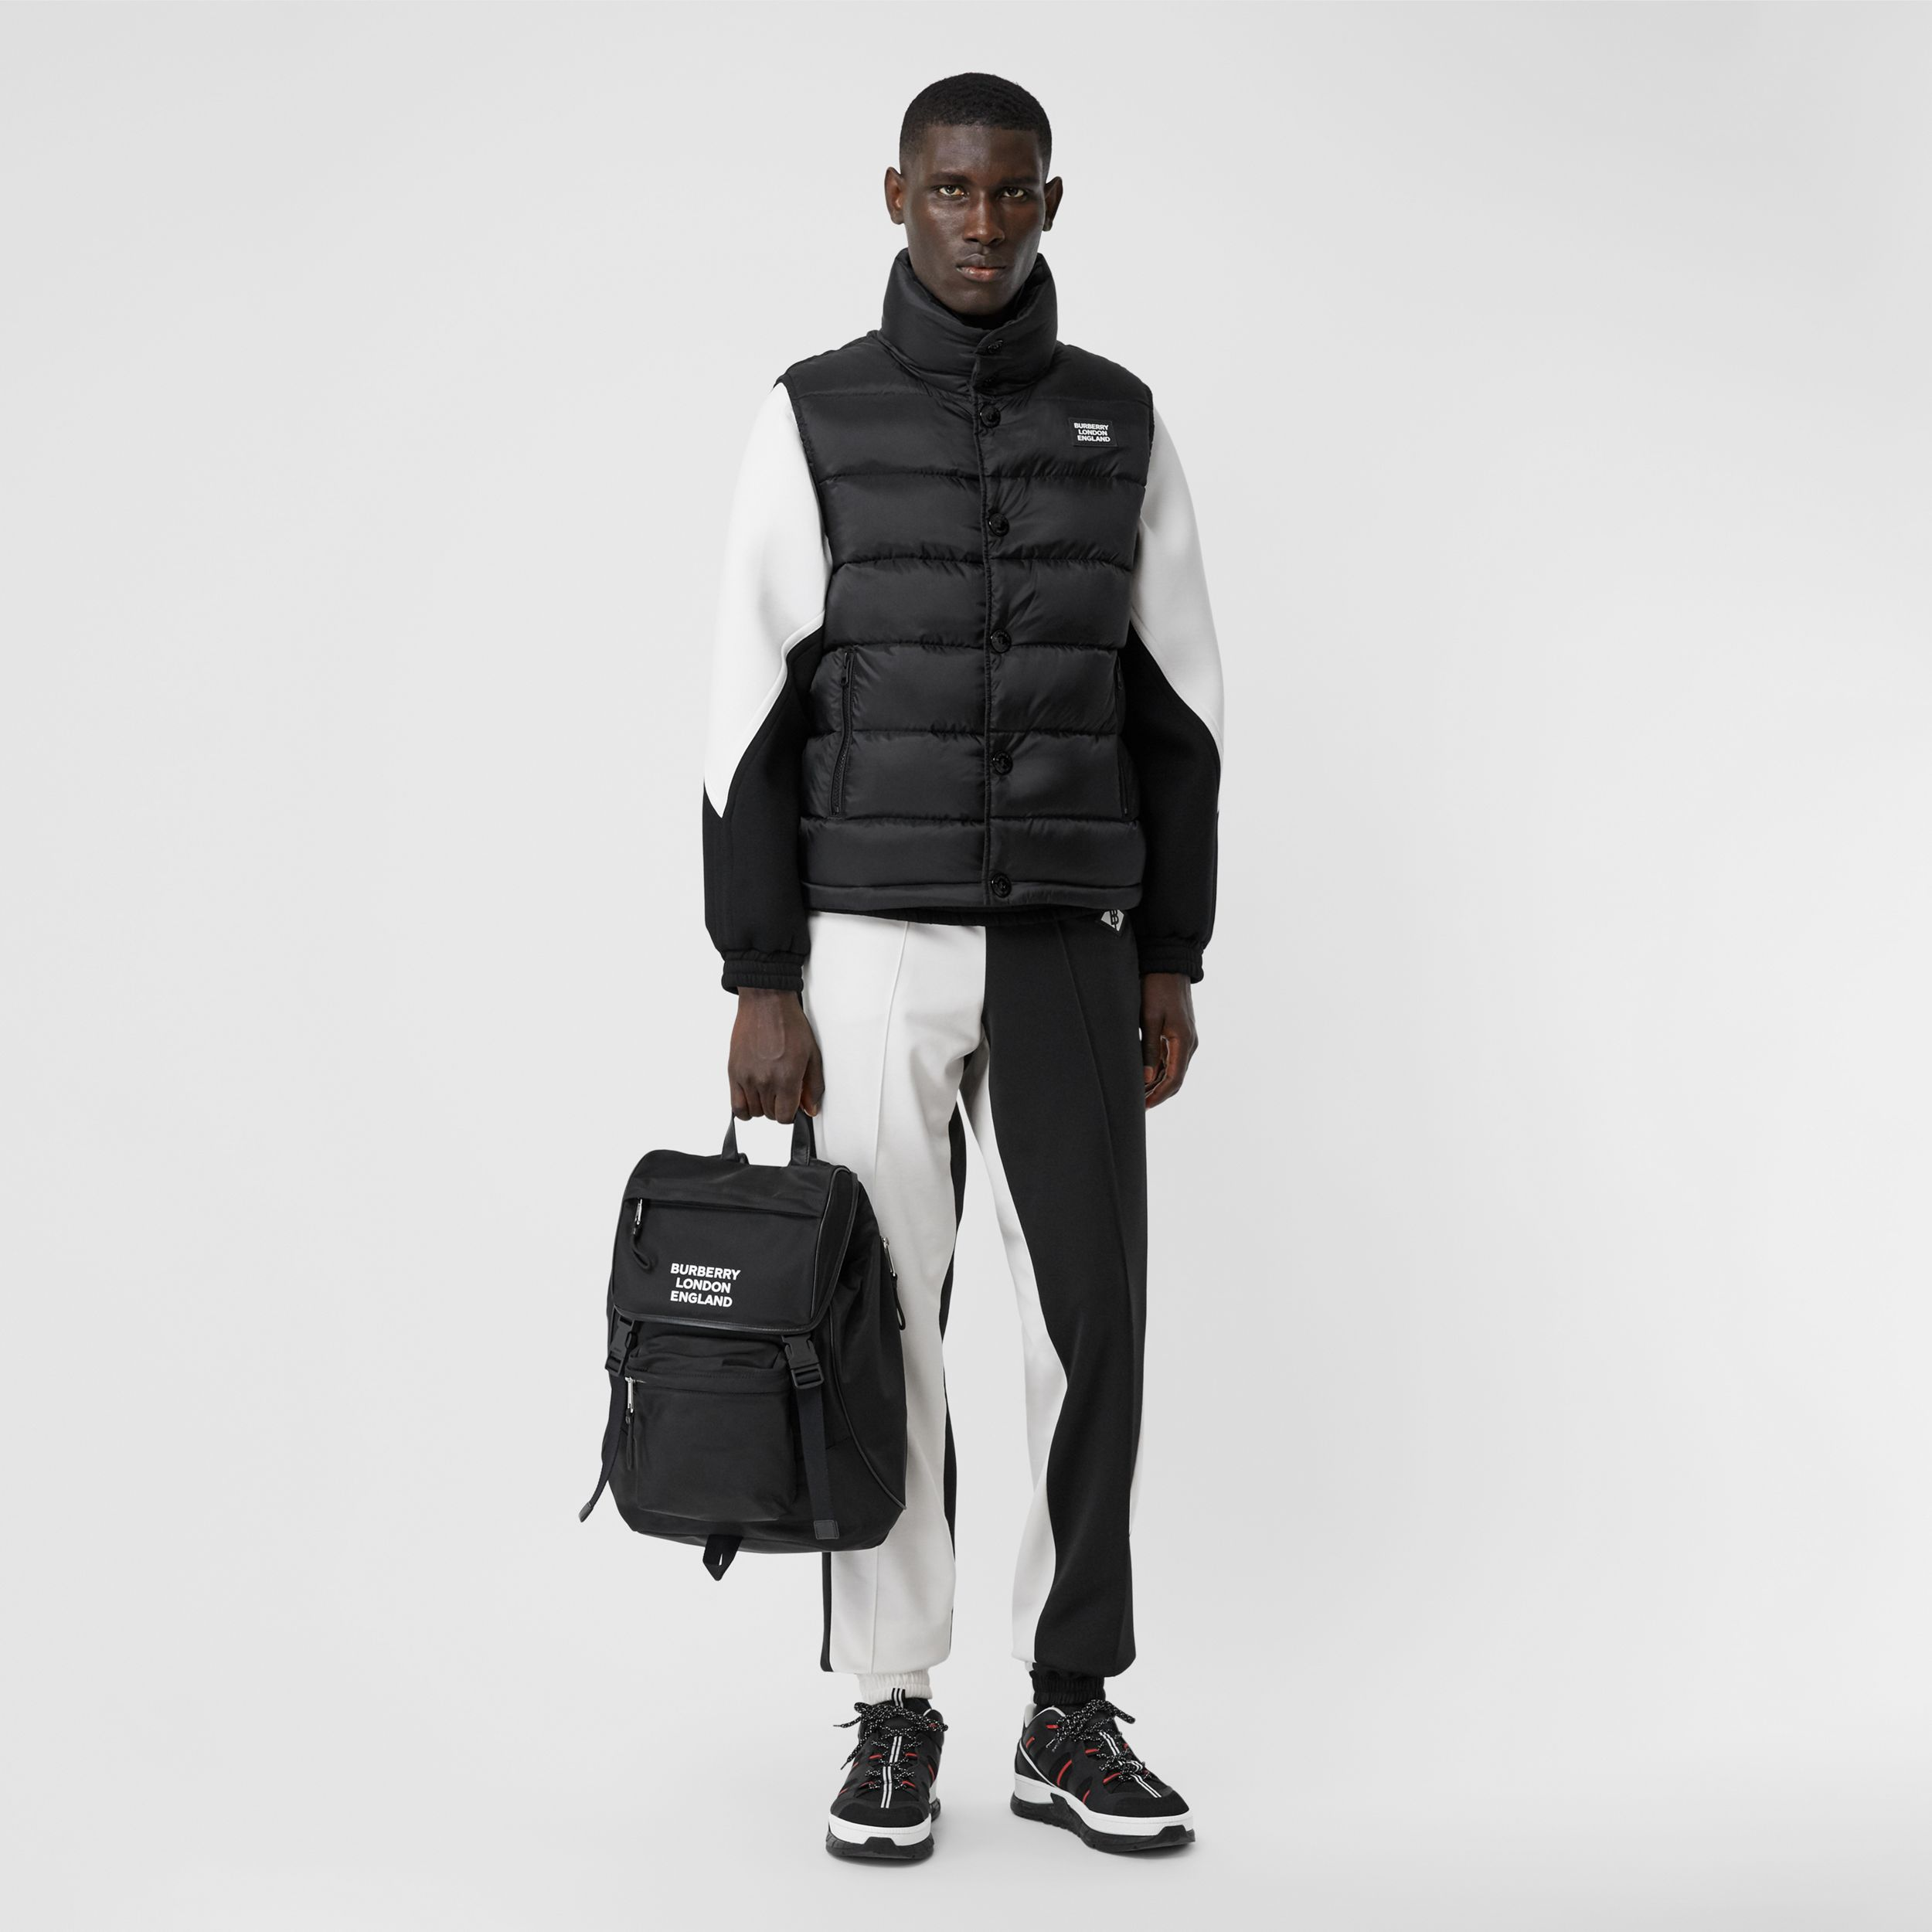 Monogram Stripe Print Puffer Gilet in Black | Burberry Australia - 4